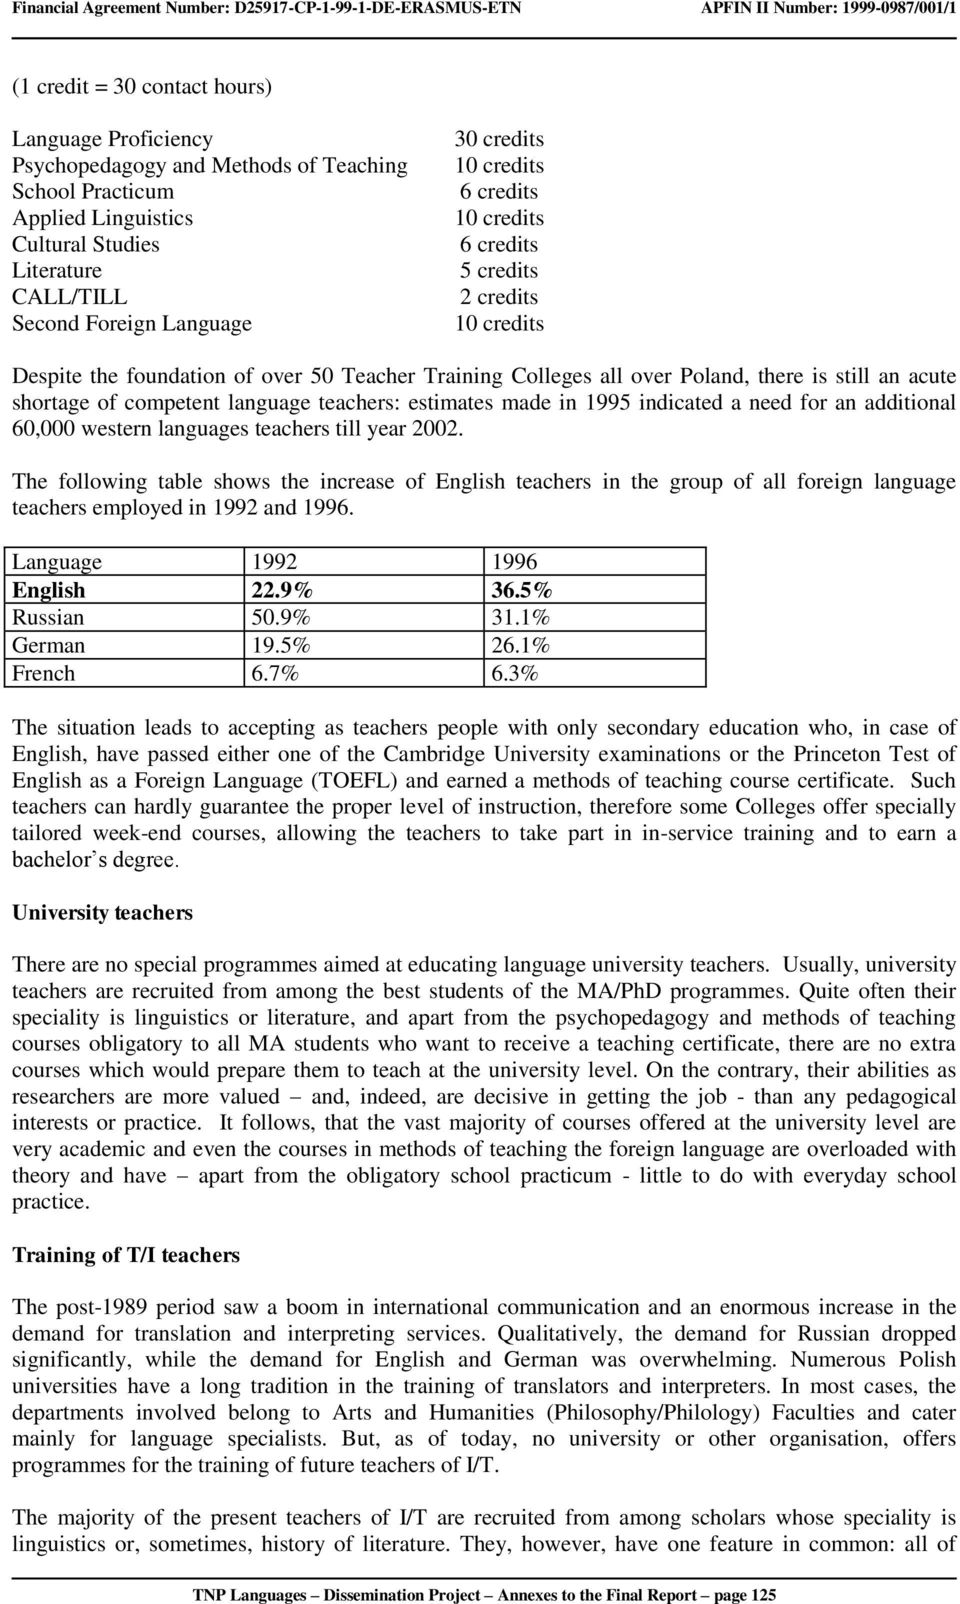 language teachers: estimates made in 1995 indicated a need for an additional 60,000 western languages teachers till year 2002.